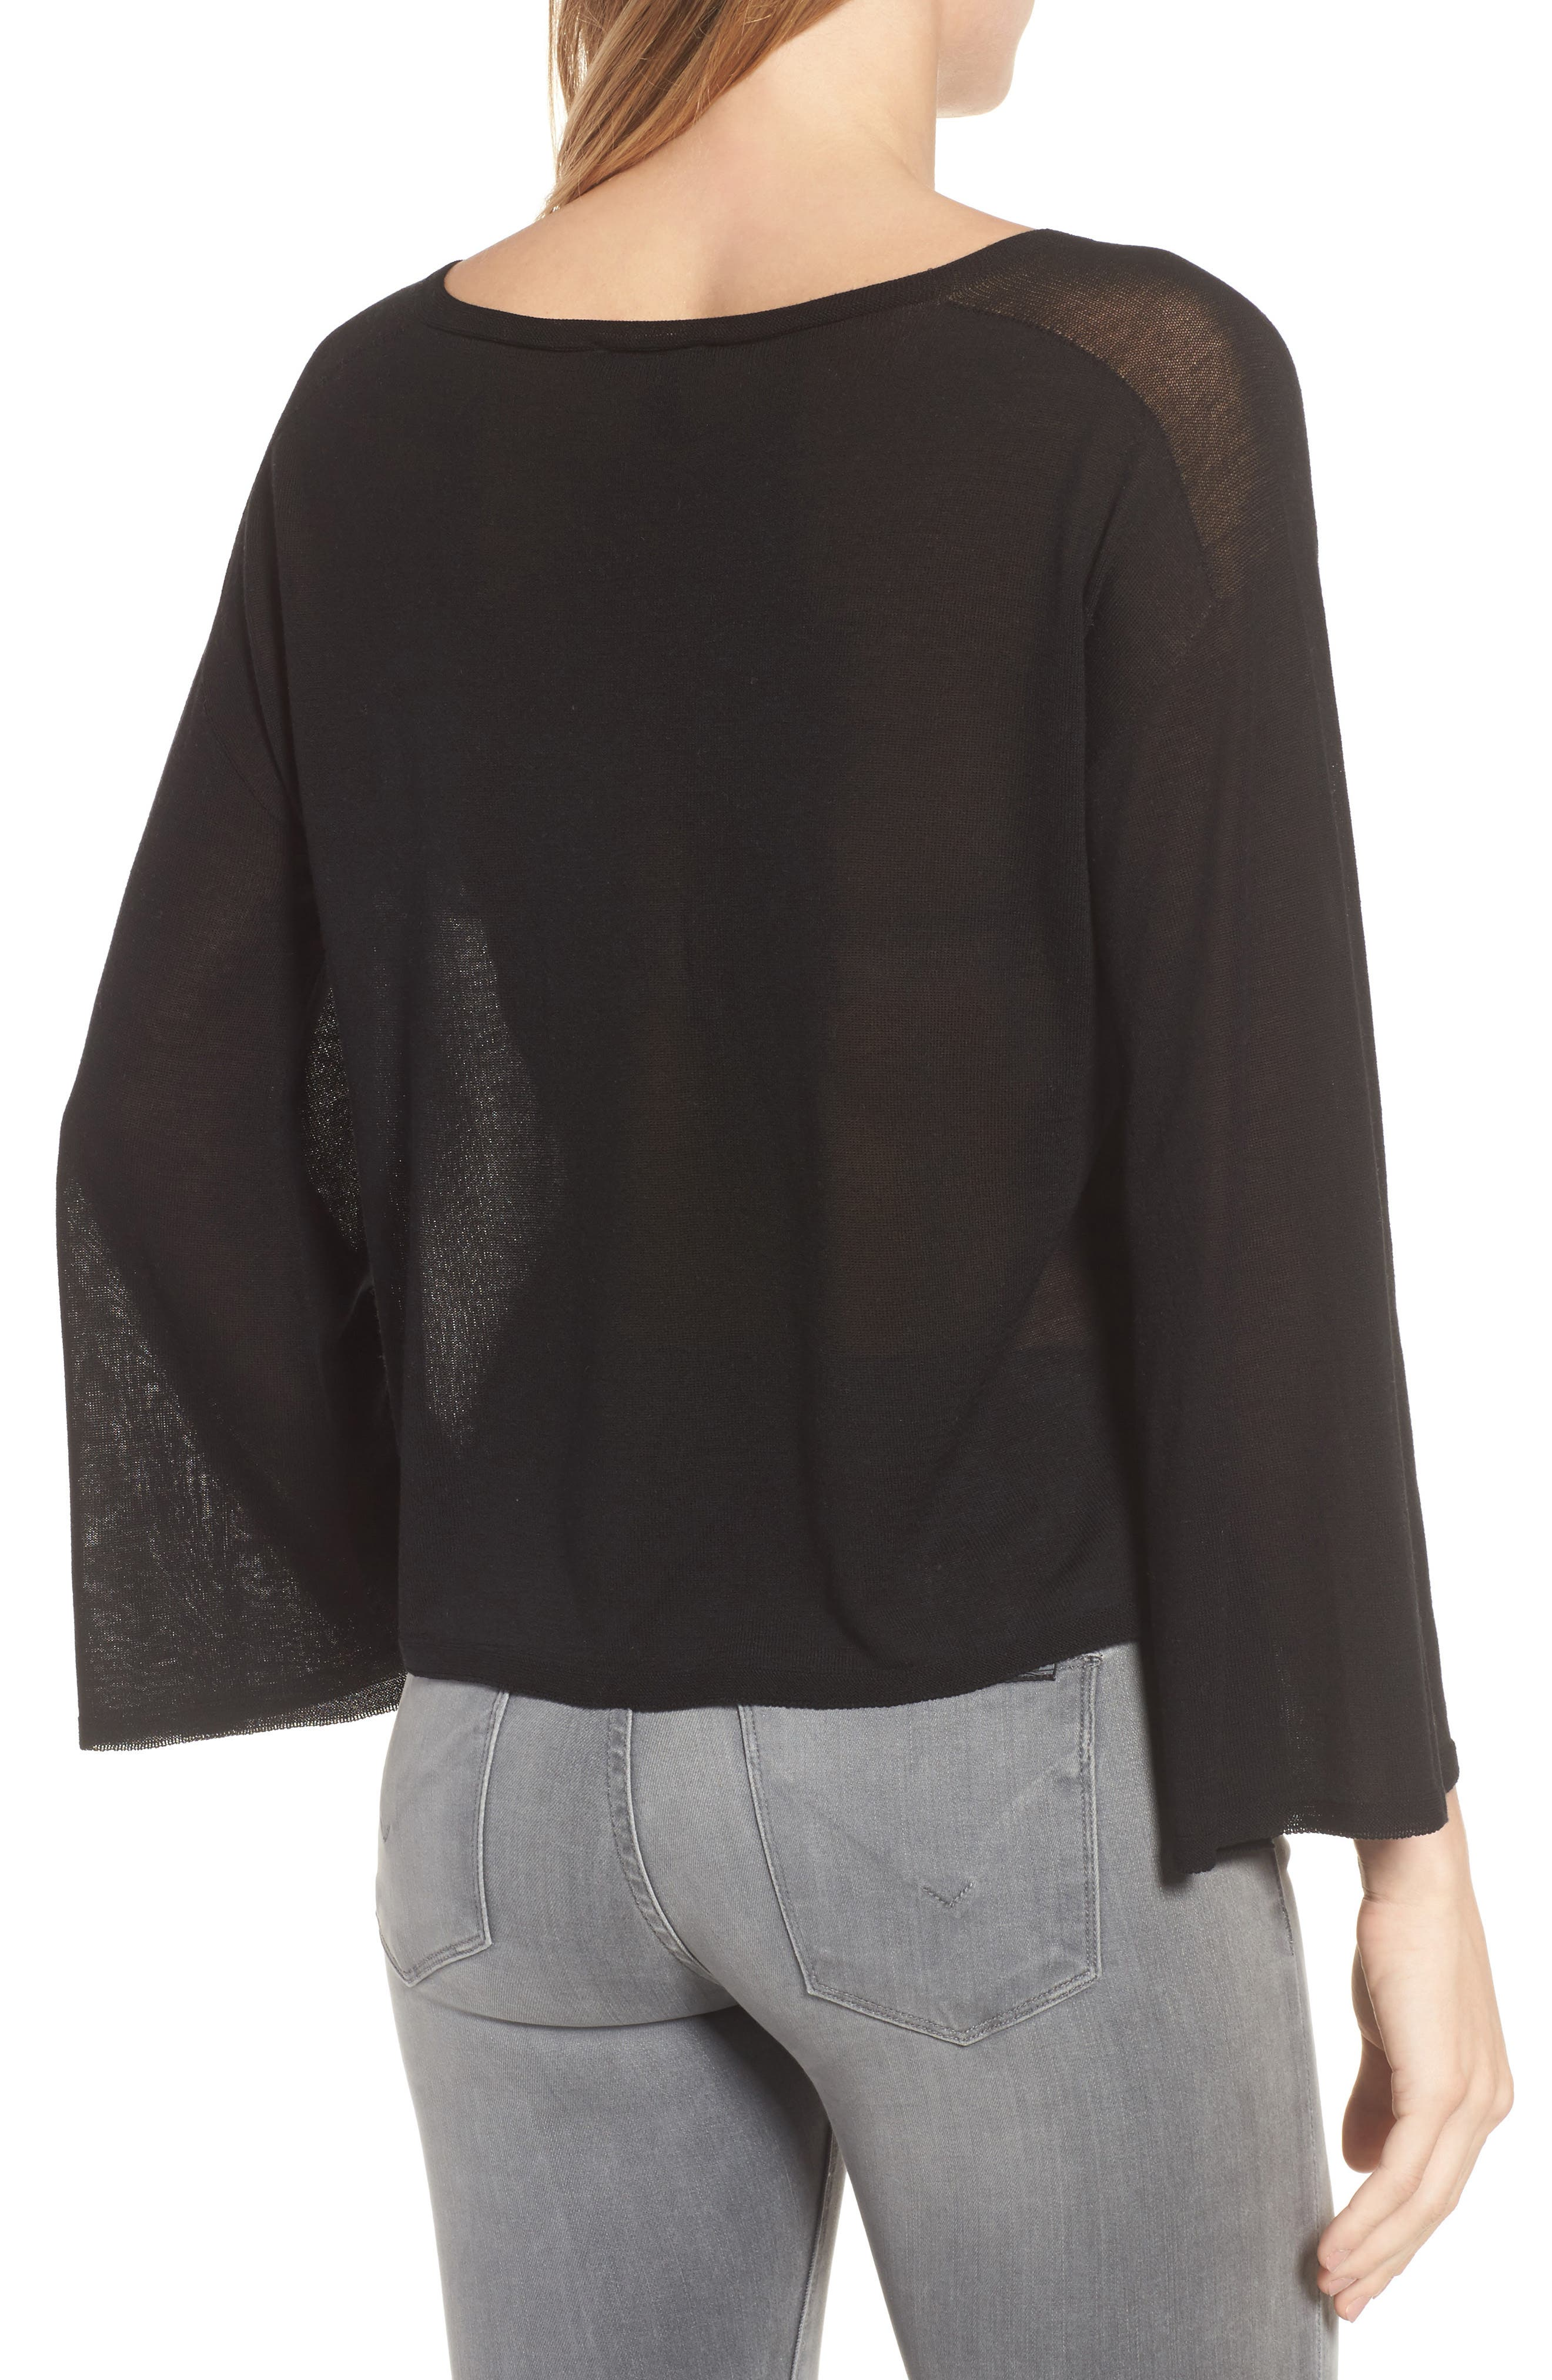 Tencel<sup>®</sup> Lyocell Knit Sweater,                             Alternate thumbnail 2, color,                             001